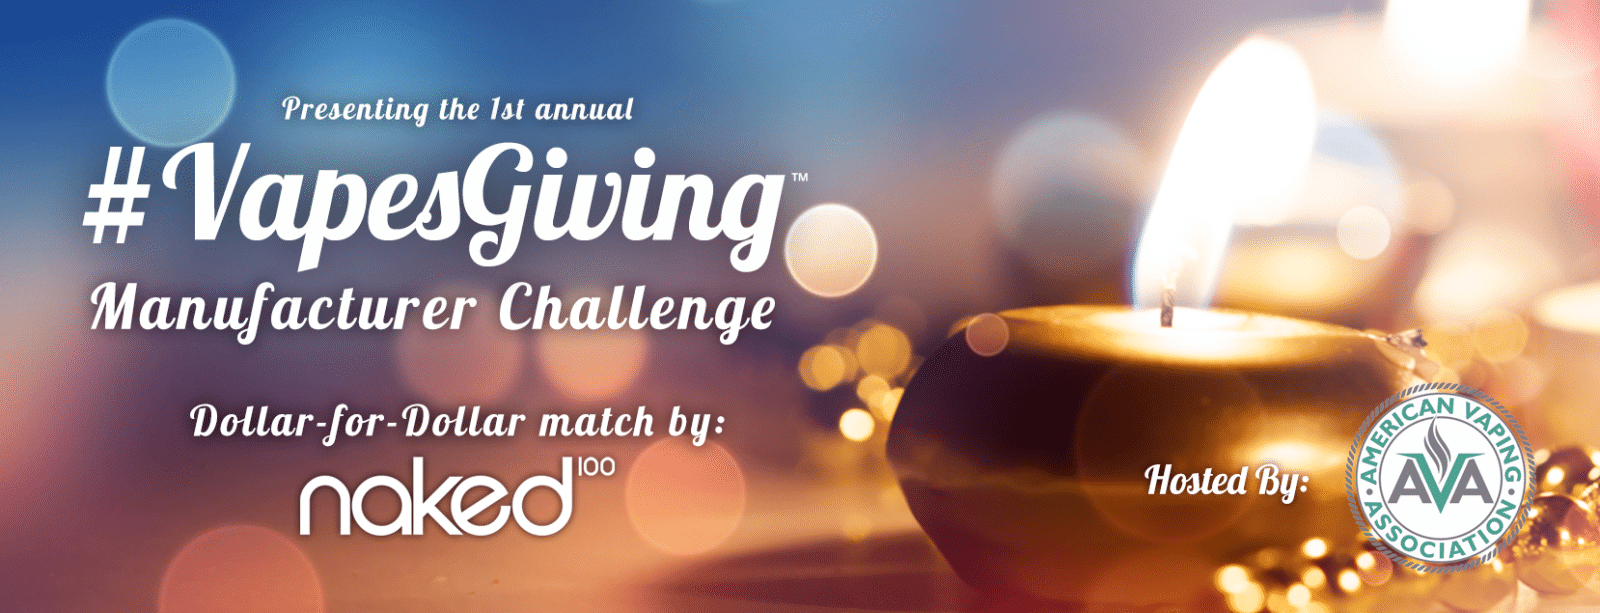 Presenting the 1st Annual # VapesGiving Manufacturer Challenge!